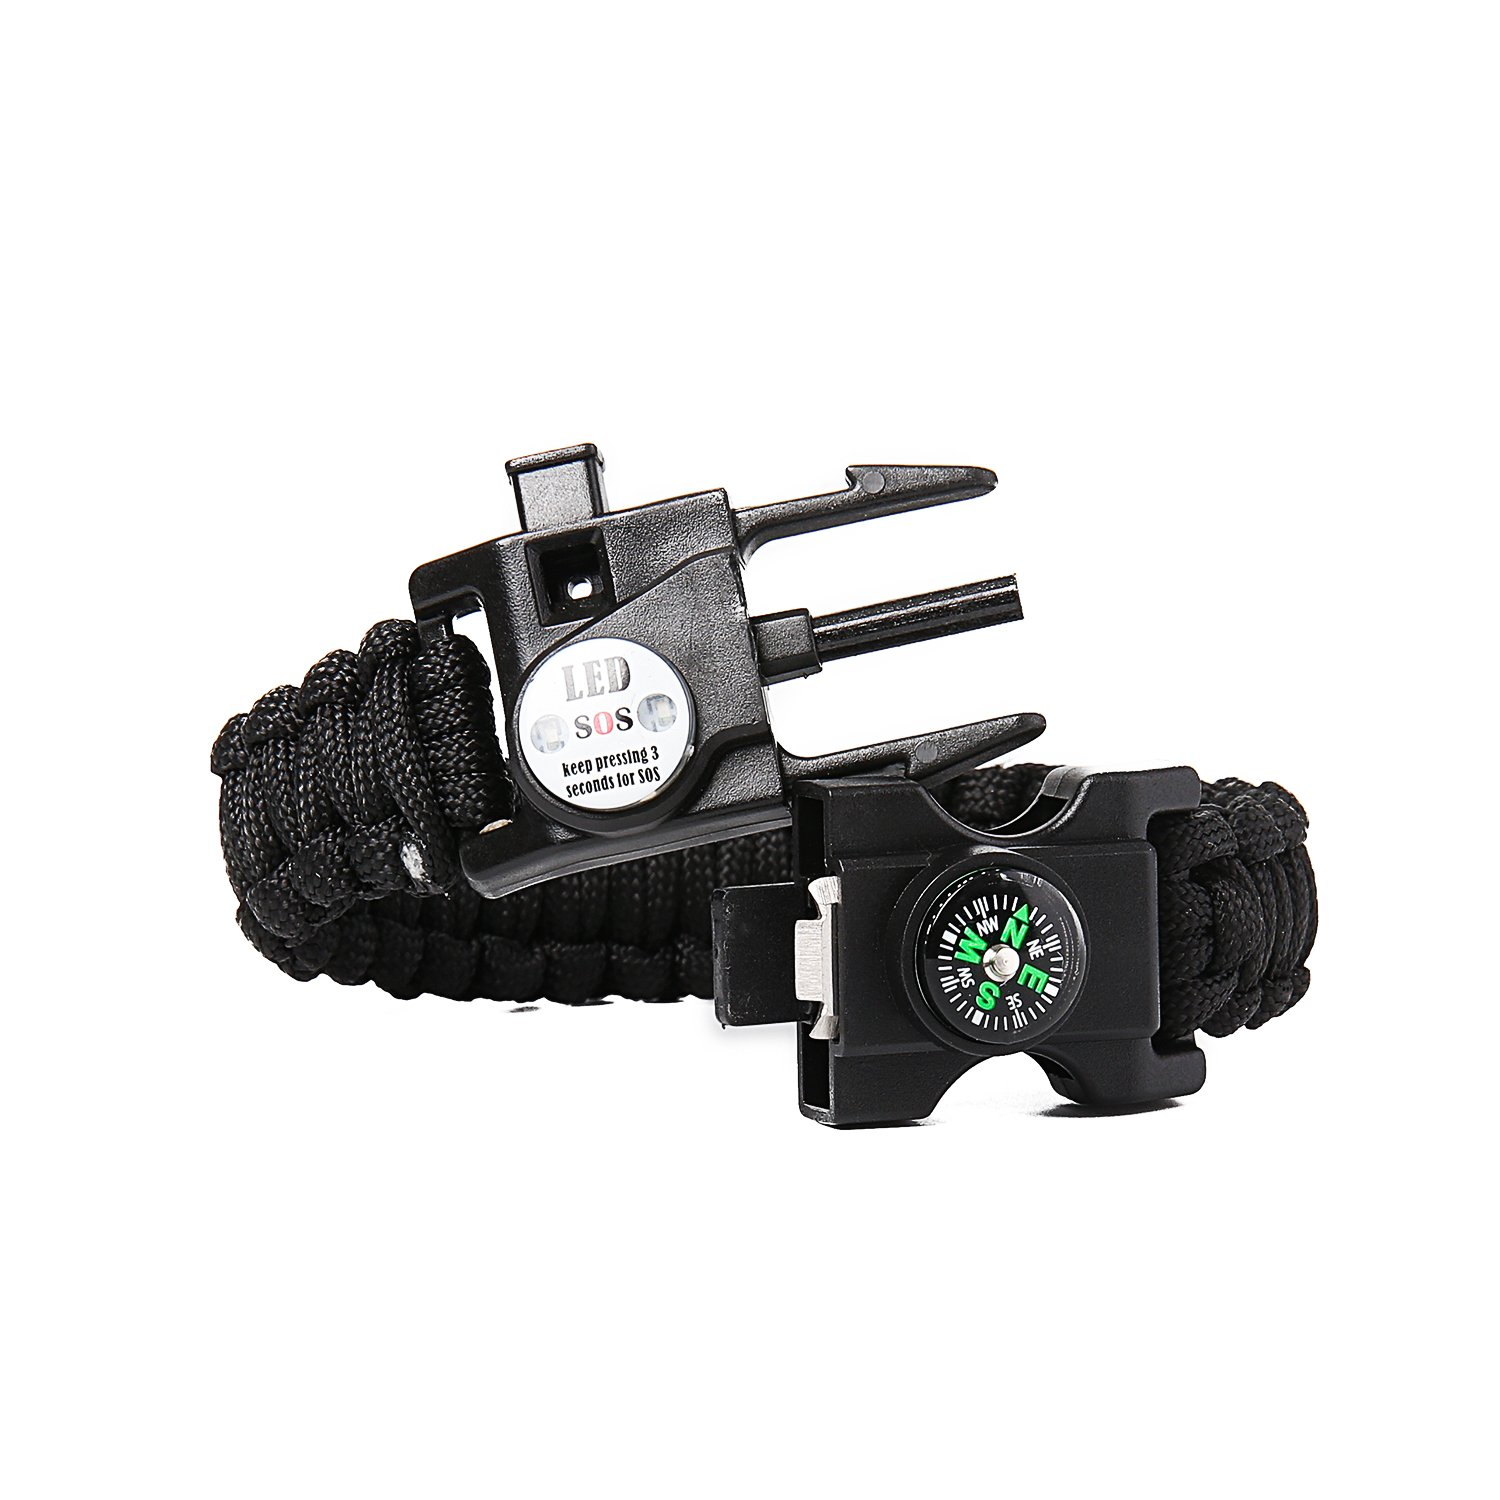 Rescue Whistle and mini Multitool Fire Starter Compass Slim Buckle Design Rescue Whistle and mini Multitool Fire Starter Compass Slim Buckle Design IT/&Lin Firestarter Survival Bracelet SOS LED Light The white camouflage